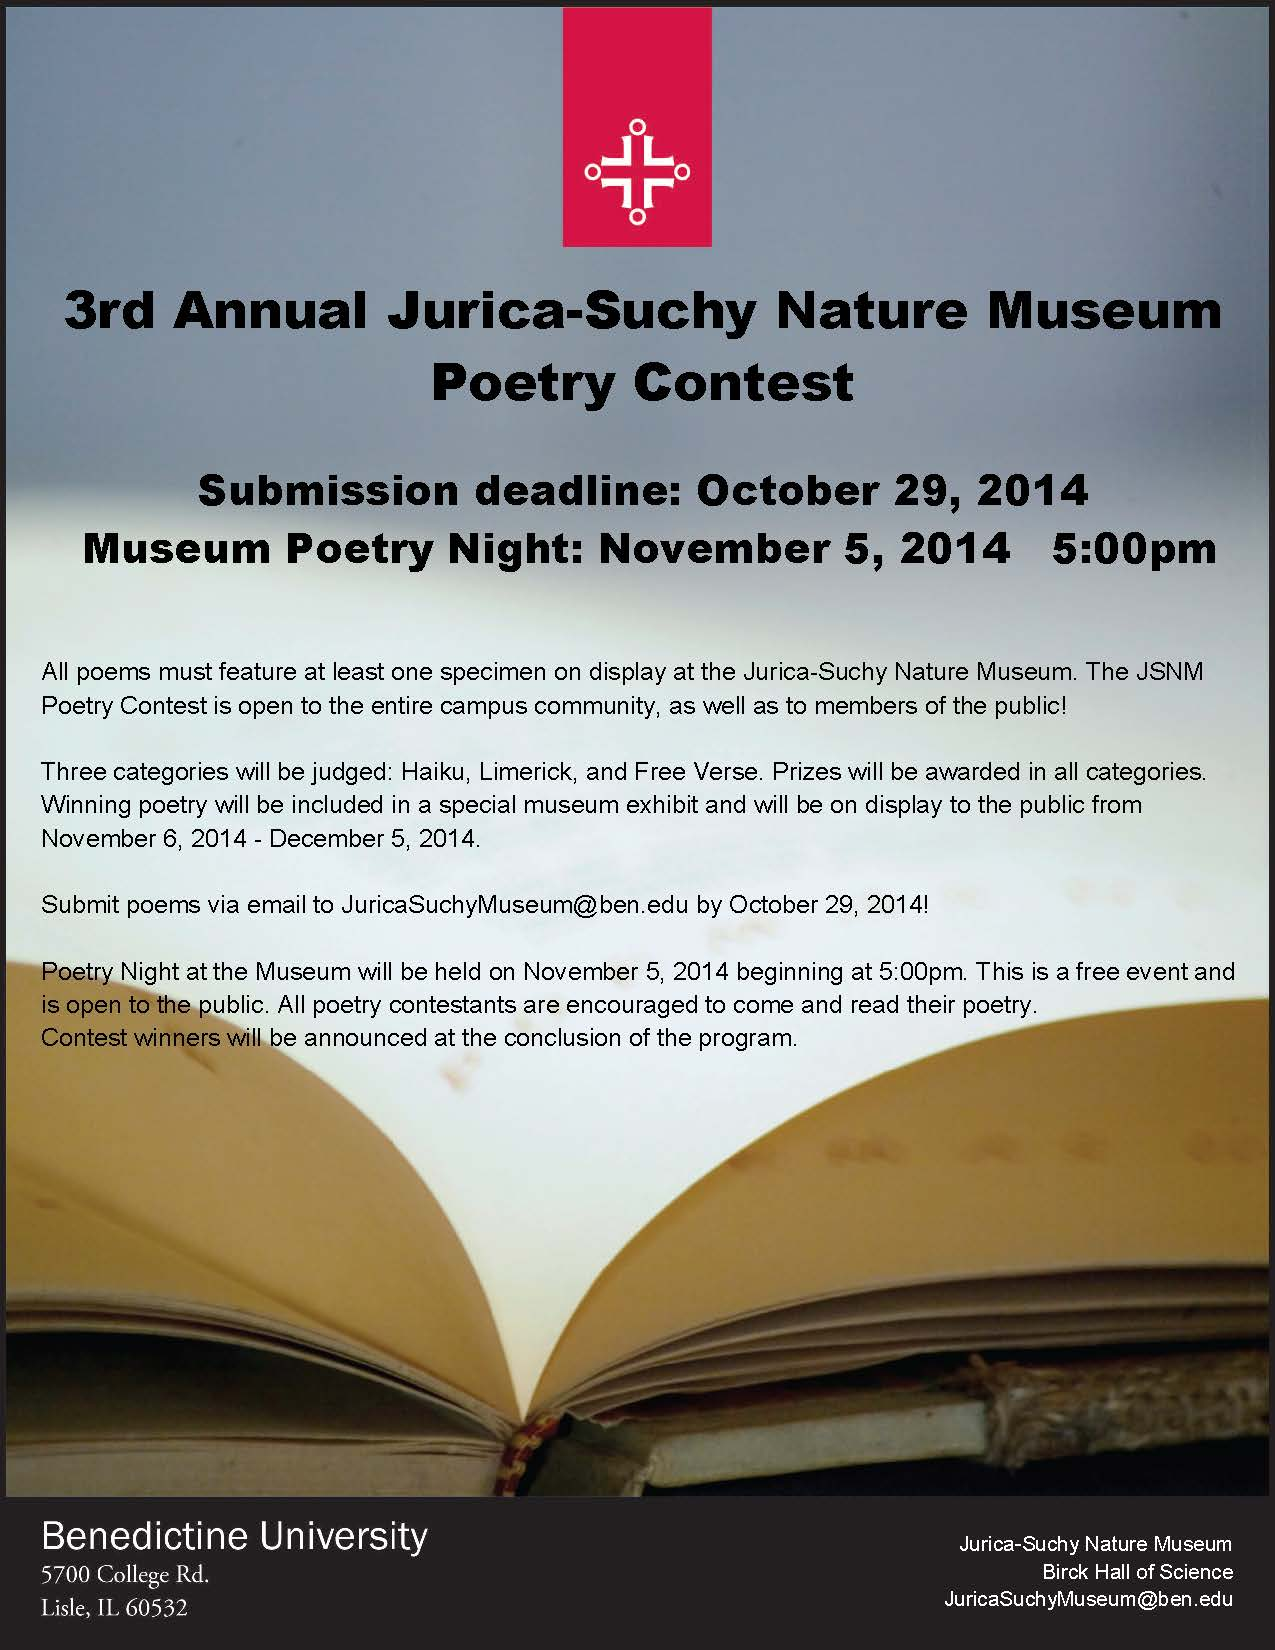 JSNM Poetry Contest 3rd Annual 2014